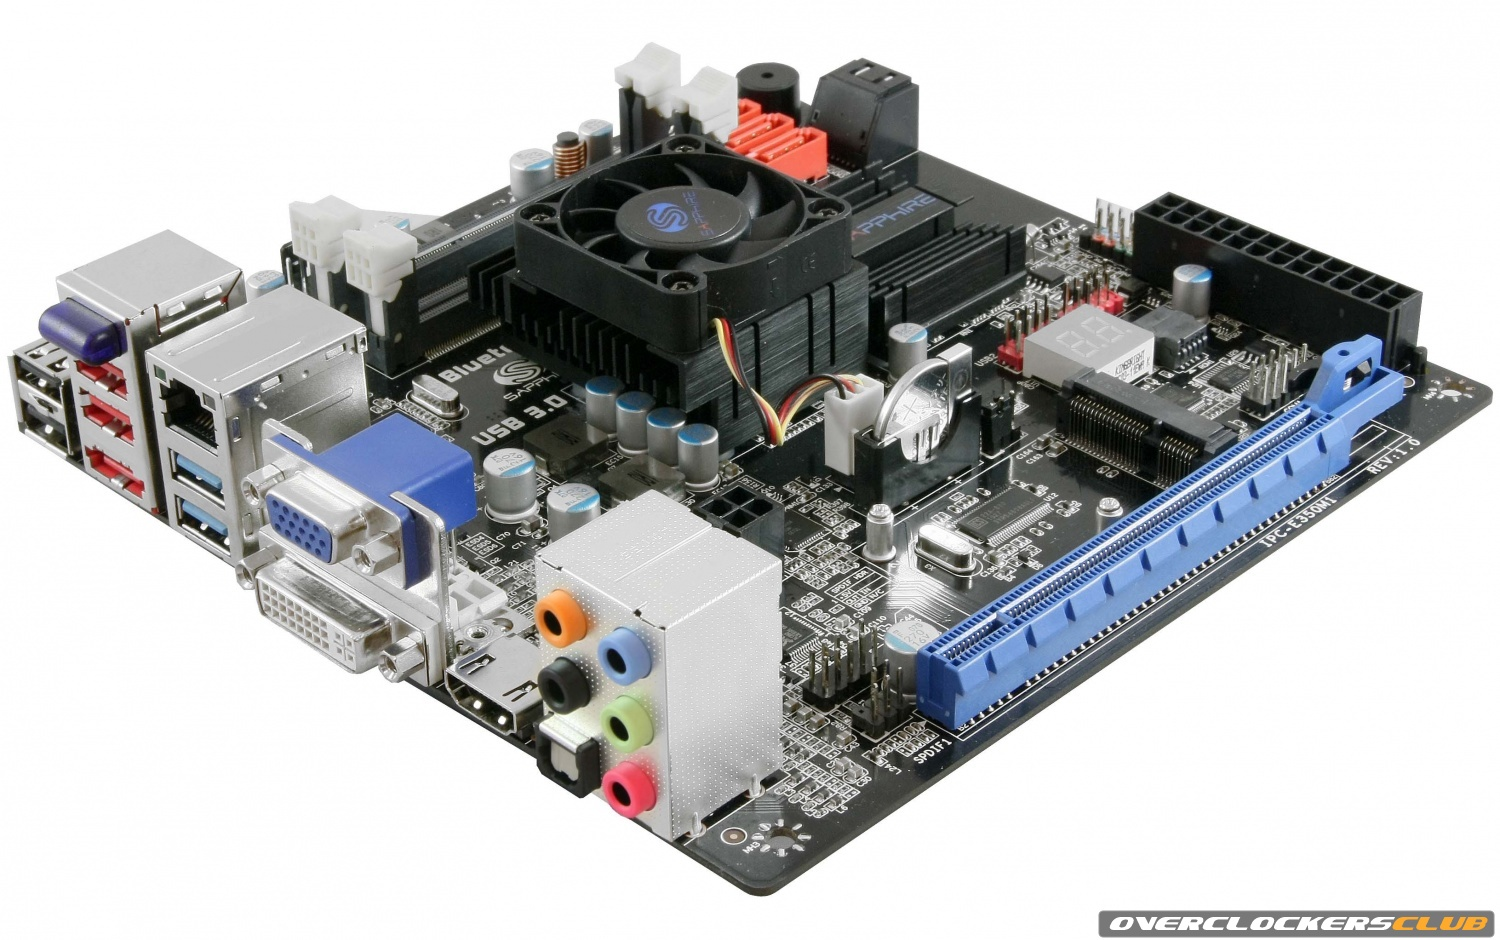 Sapphire Announces Pure White Fusion AMD APU Motherboard